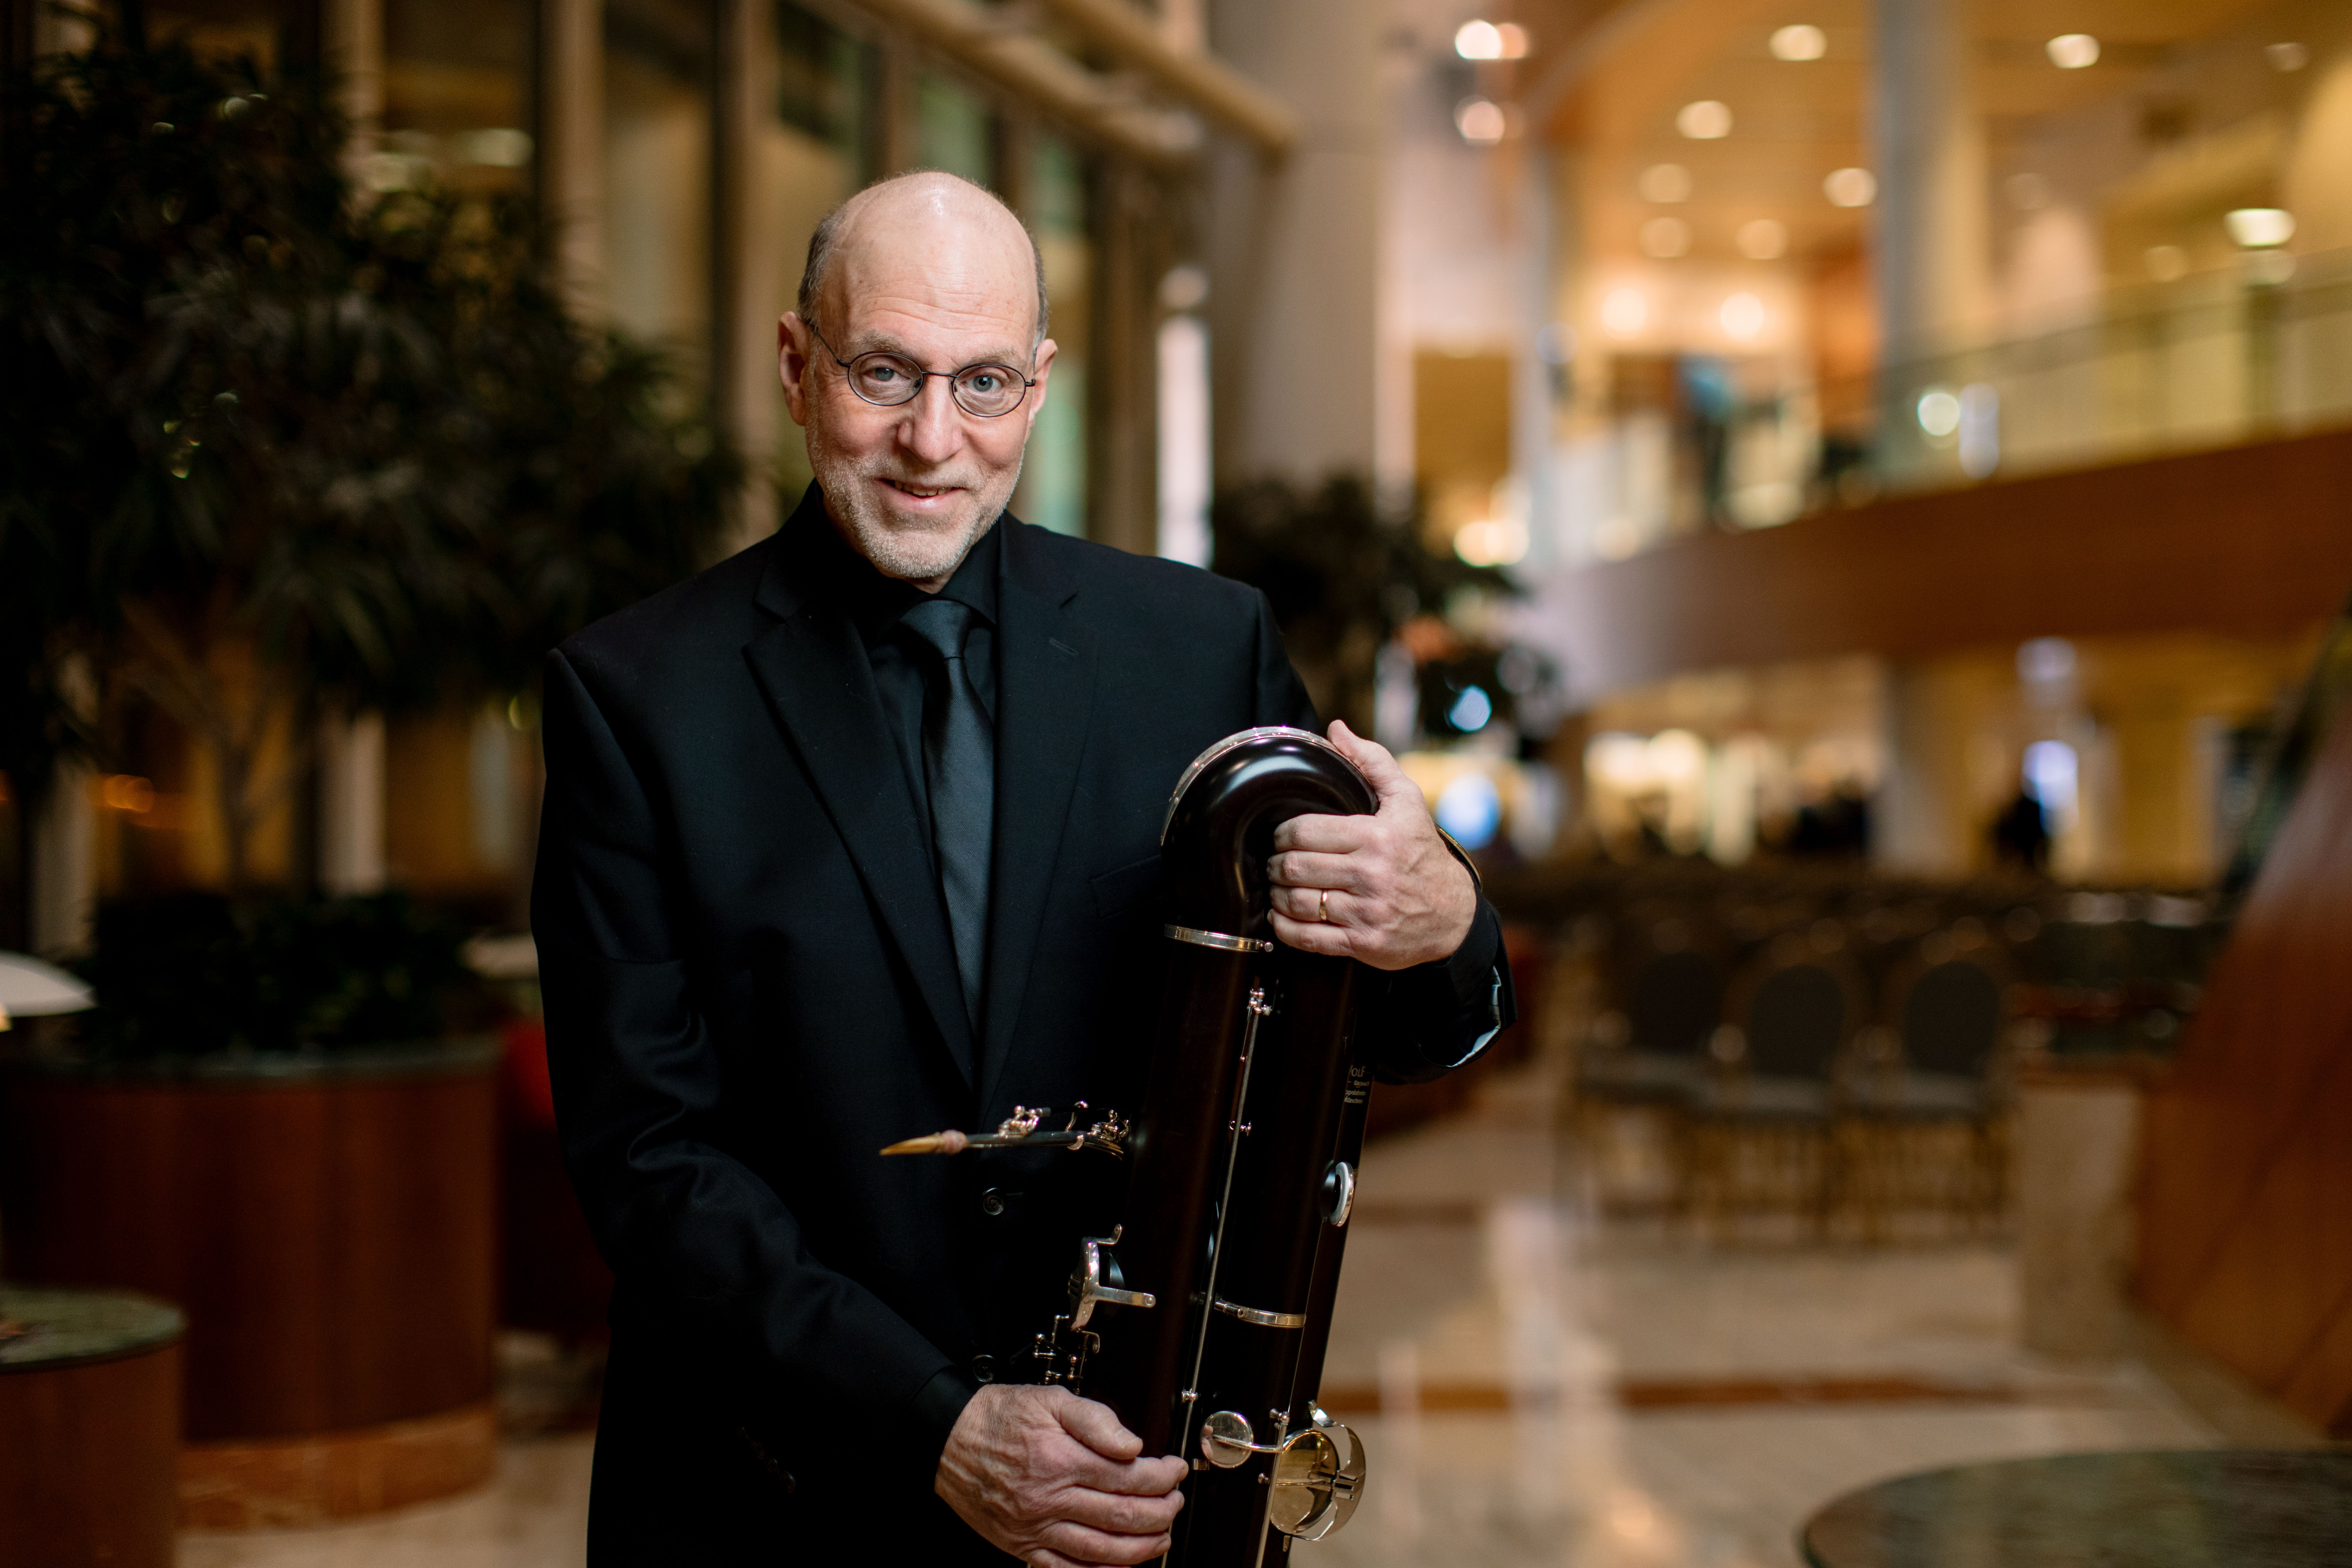 Celebrating Music at Mayo Clinic Featuring Lewis Lipnick and Friends:  A Reprise